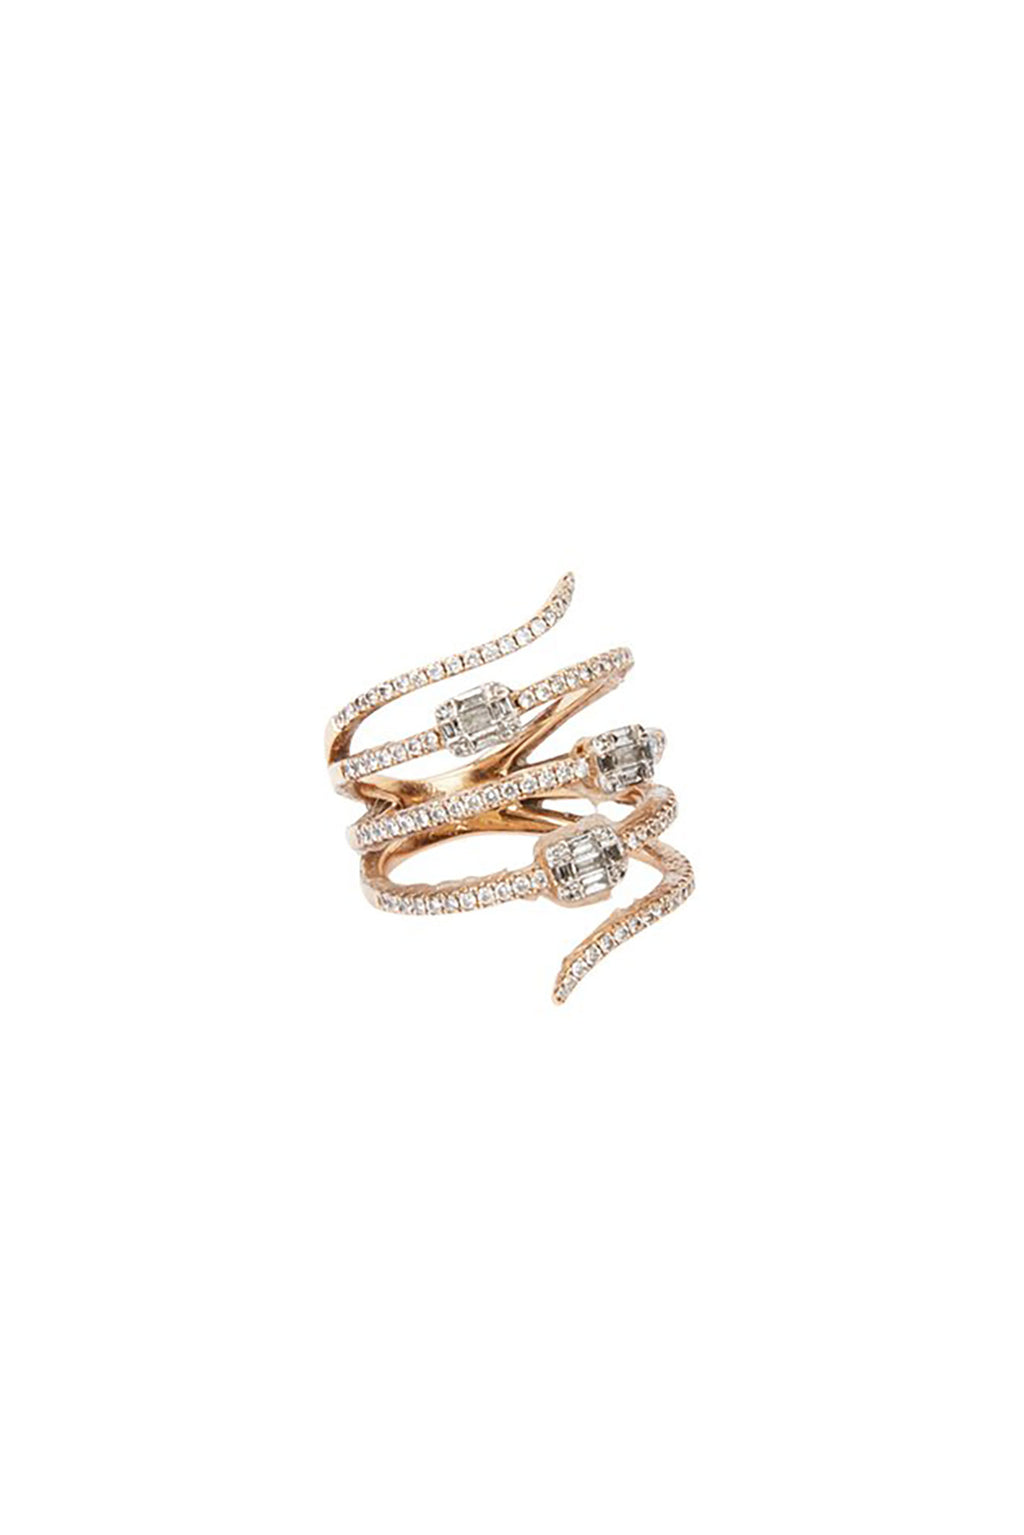 18KT Rose Gold Diamond Spiral Ring